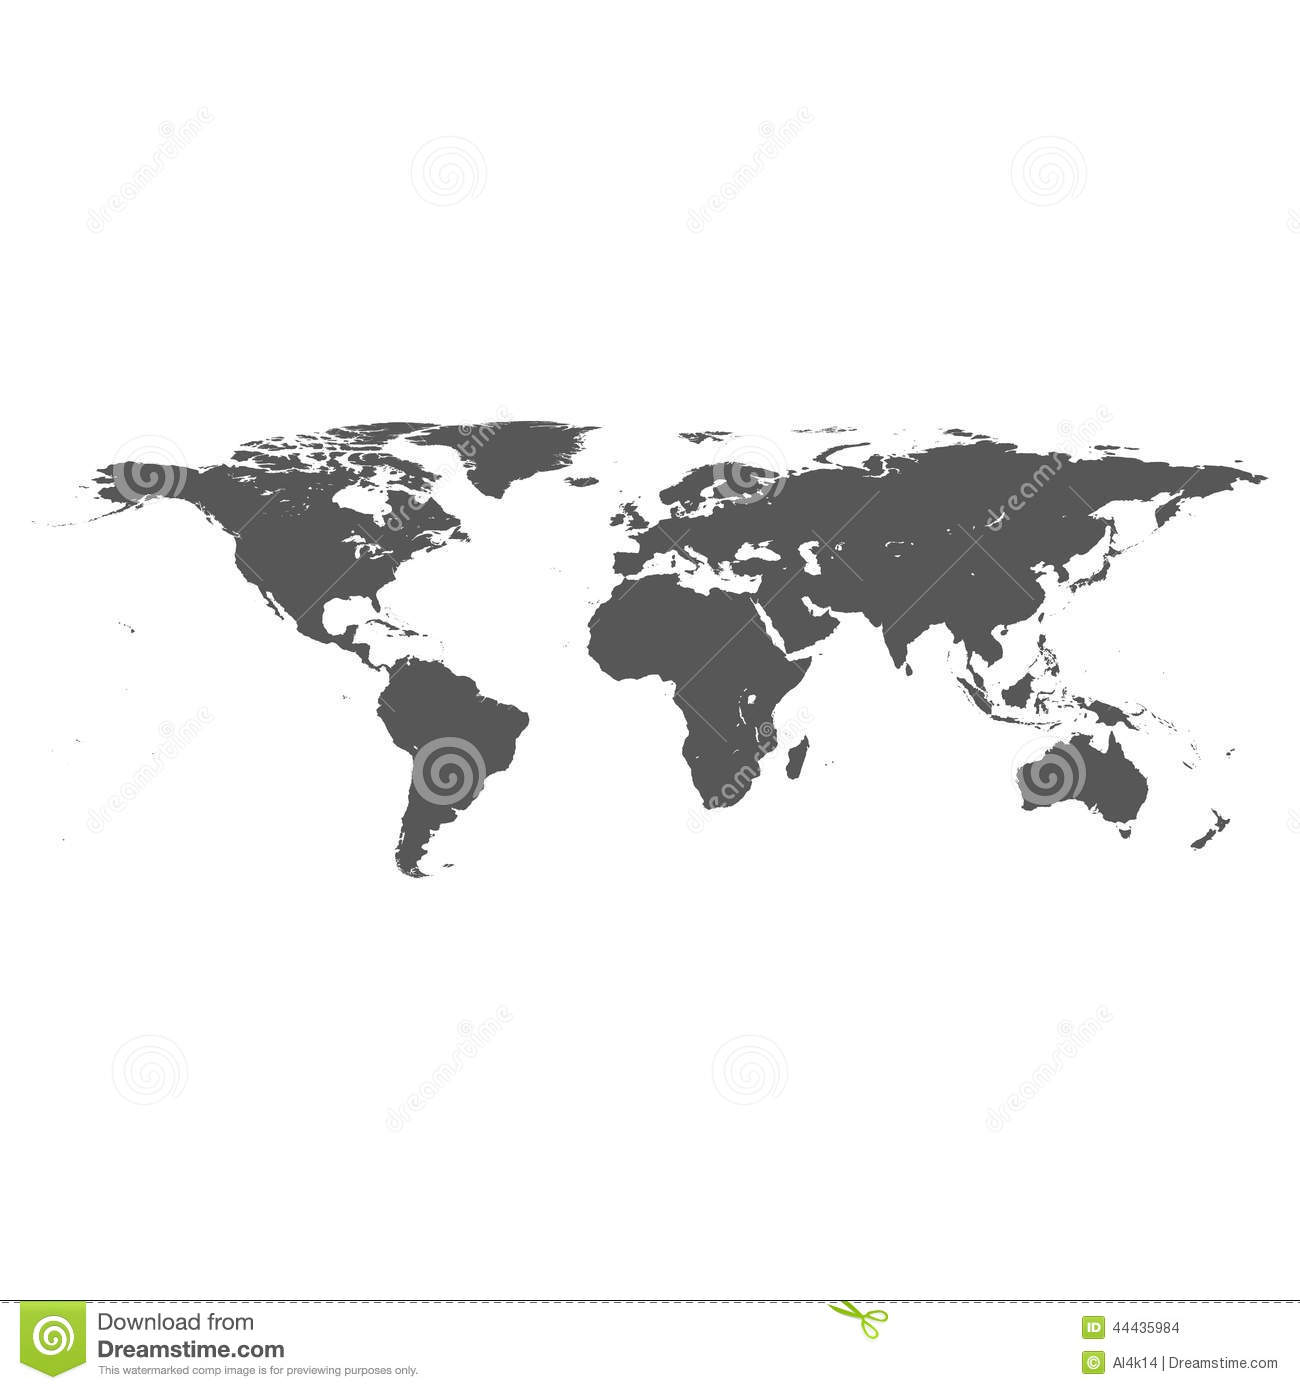 Vector world map stock vector illustration of world 44435984 vector world map gumiabroncs Images